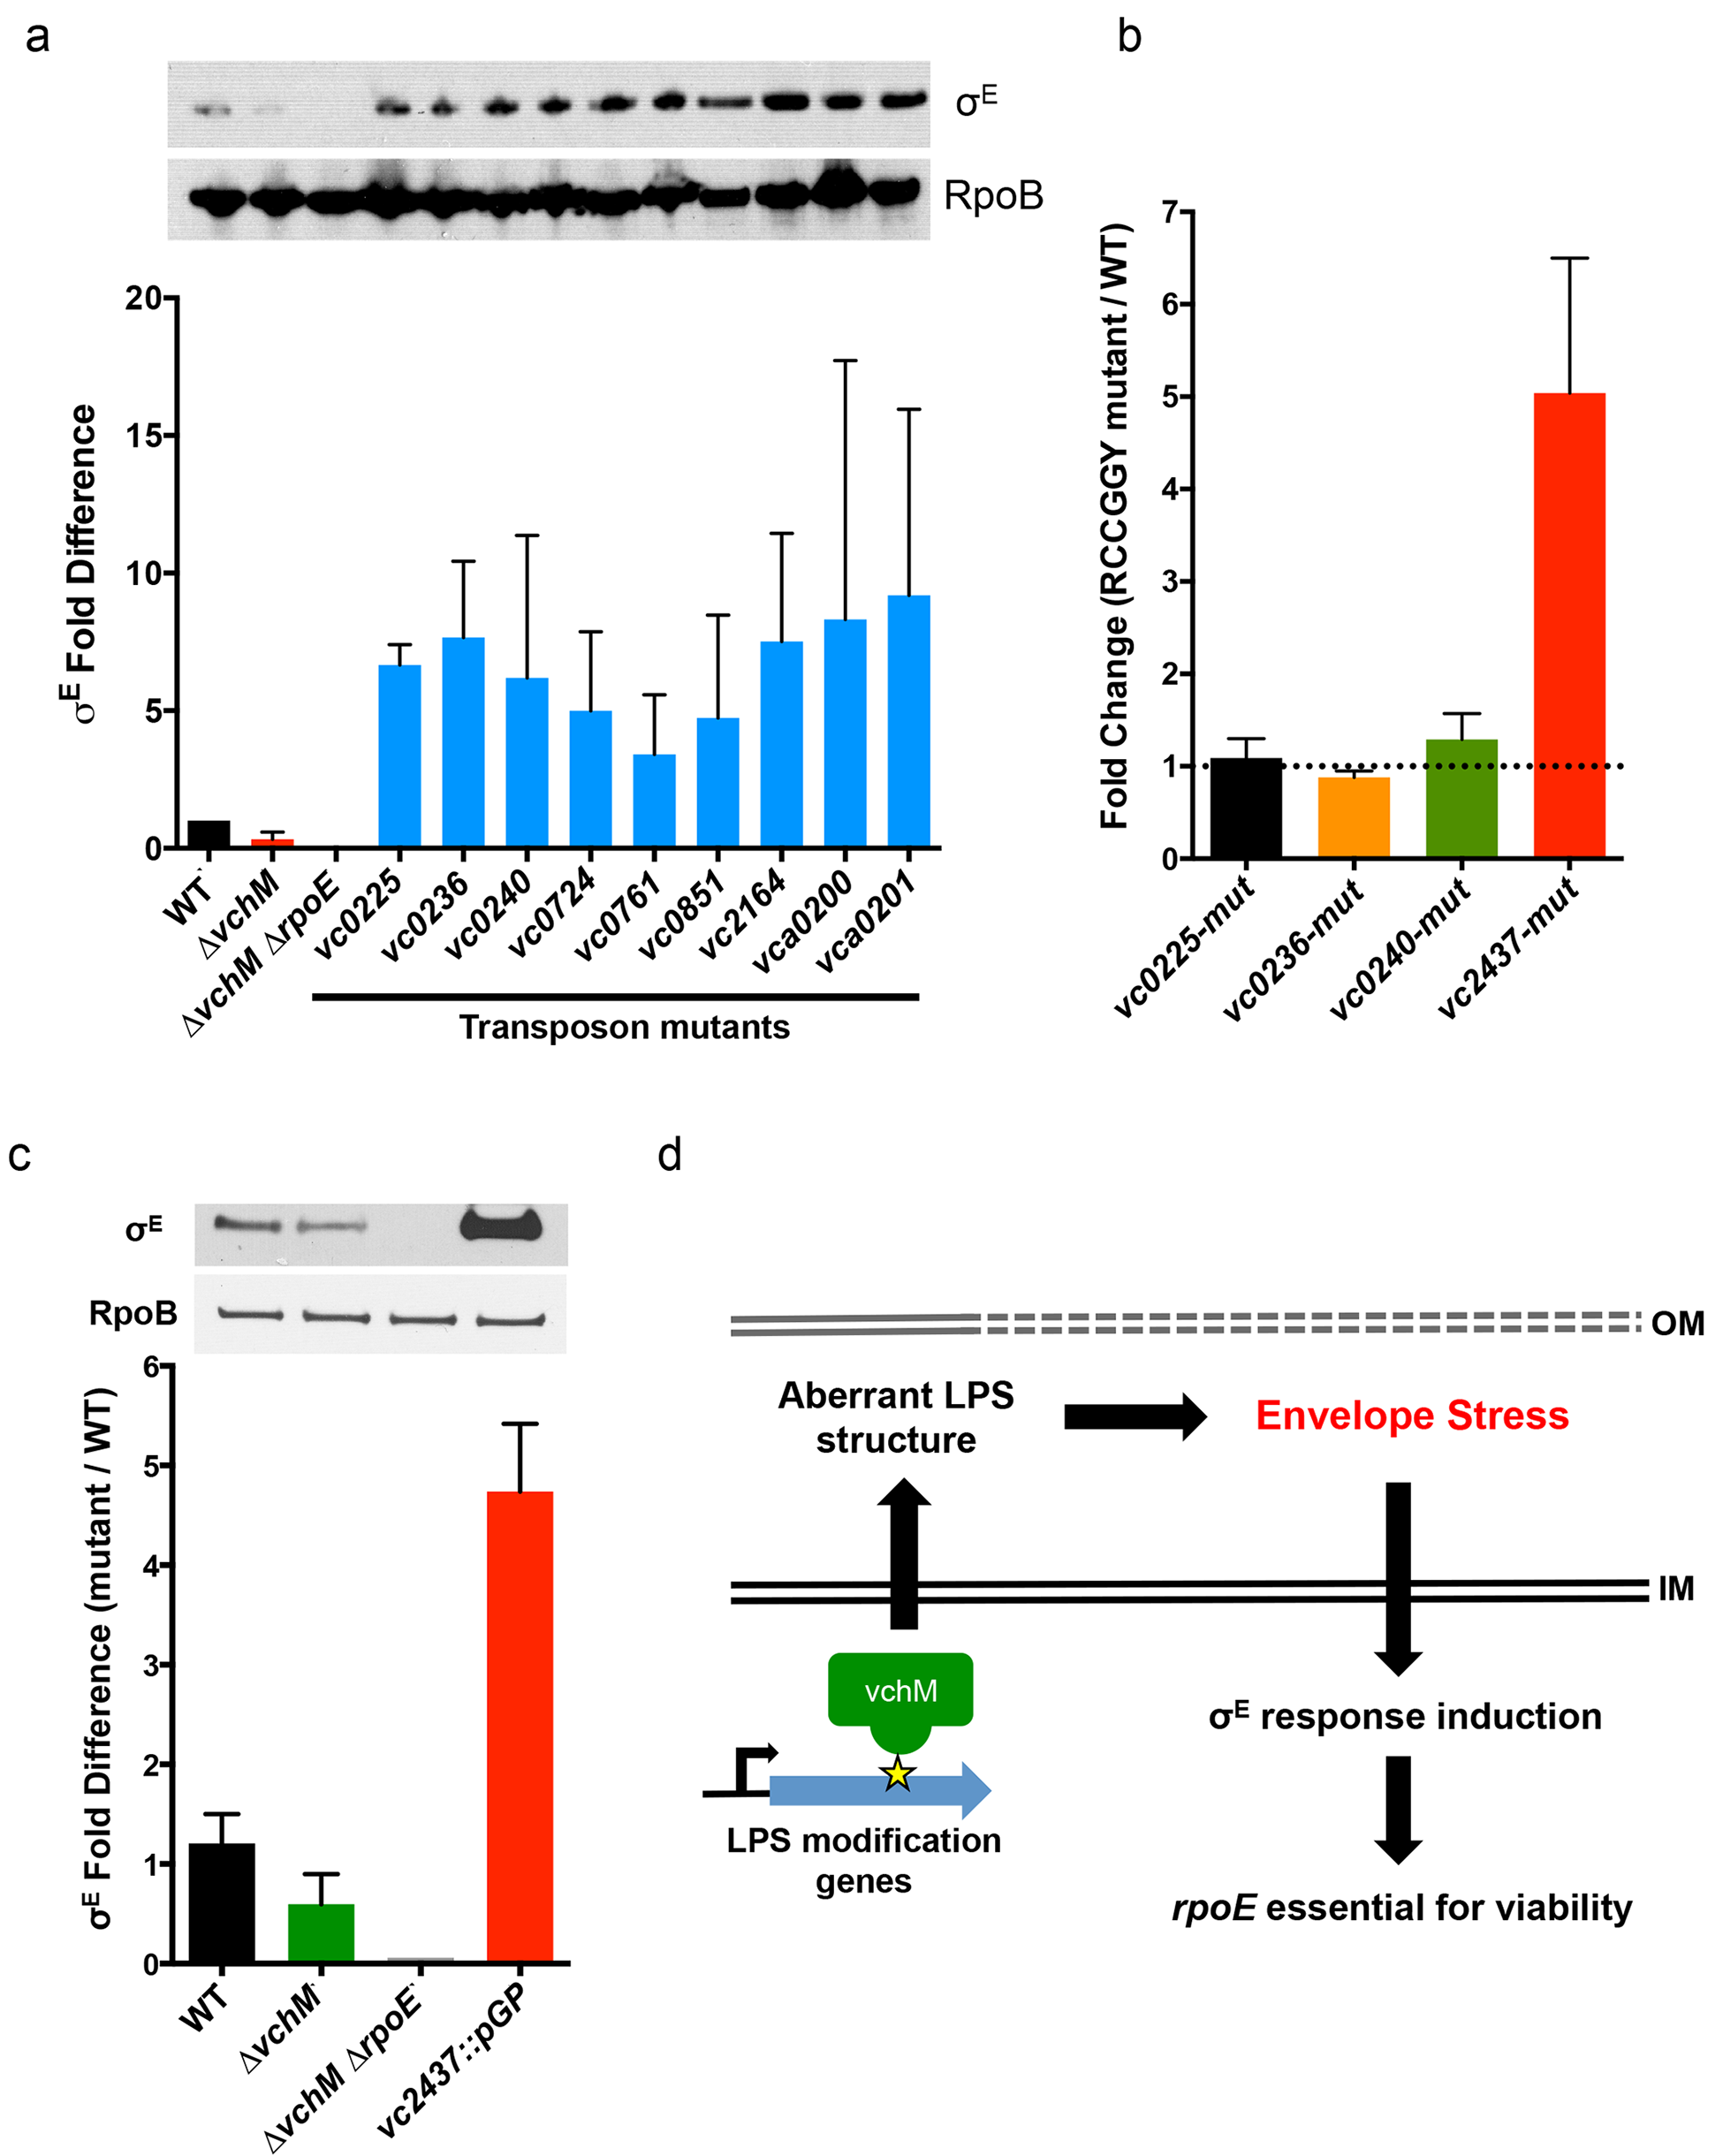 Other cell envelope-related loci and VchM control of LPS modification contribute to basal levels of σ<sup>E</sup>.